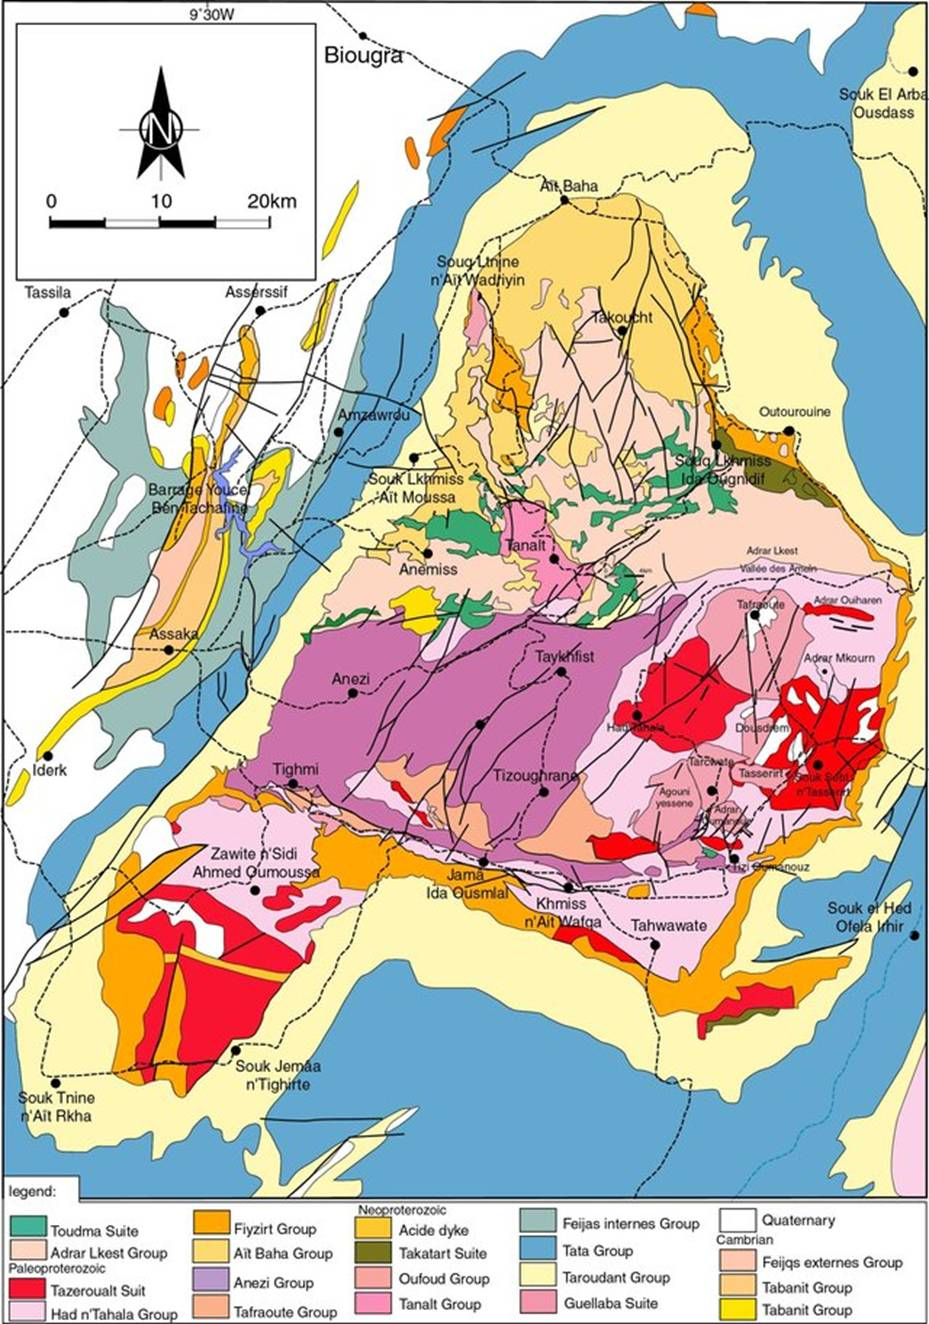 https://www.researchgate.net/profile/Soulaimani_Abderrahmane/publication/313695514/figure/fig8/AS:668592215437319@1536416214600/Simplified-geological-map-of-the-Kerdous-Precambrian-inlier-redrawn-from-the-geological_W640.jpg